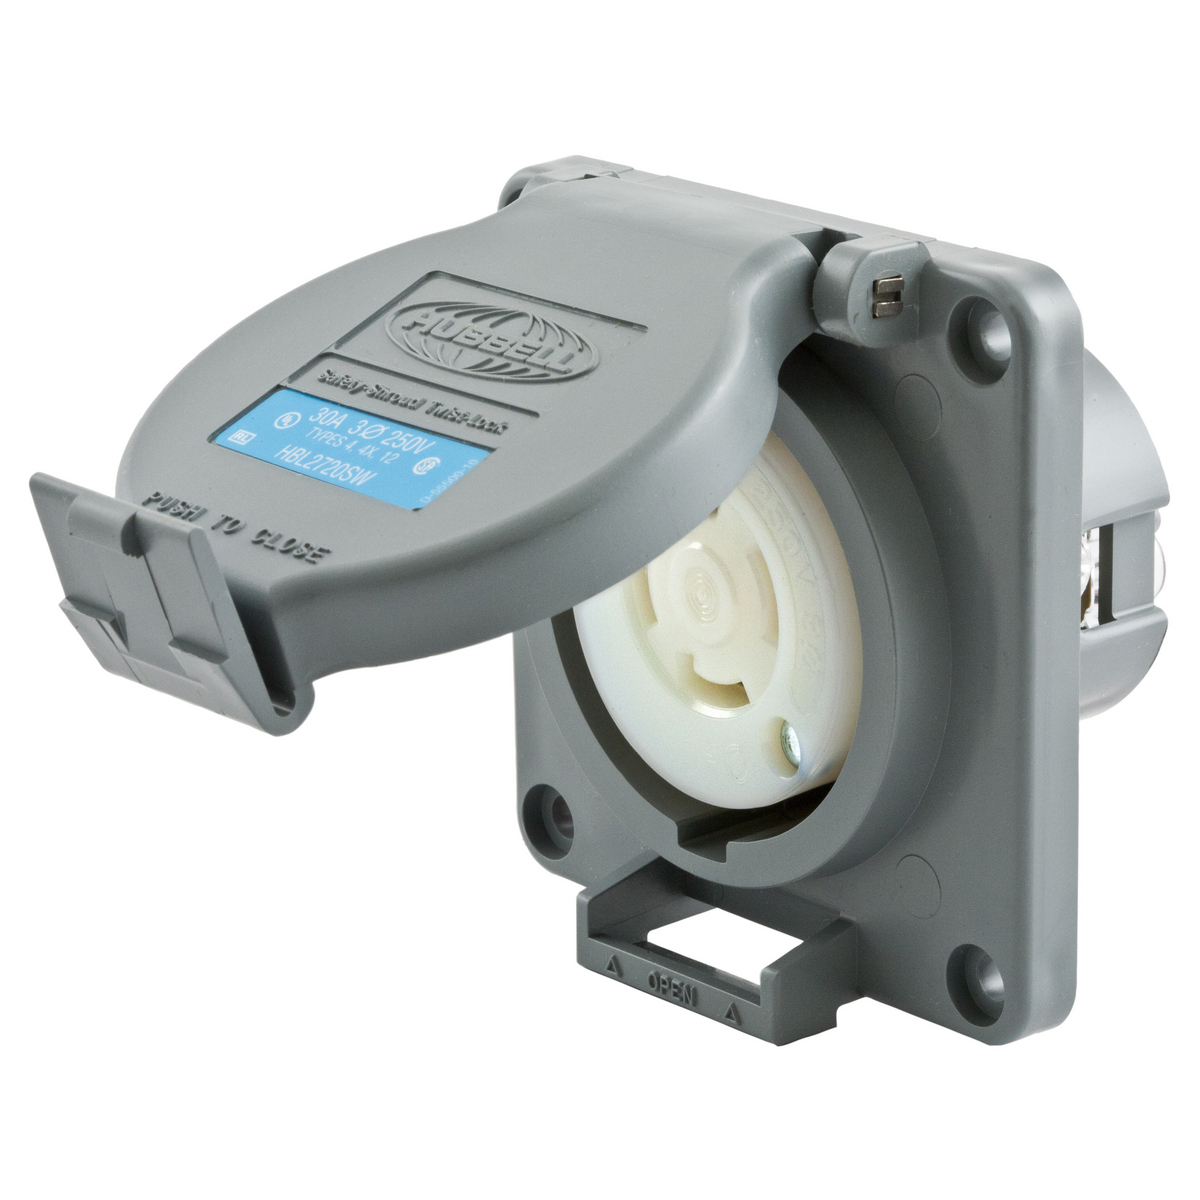 Hubbell HBL2720SW 30 Amp 250 Volt 3-Pole 4-Wire NEMA L15-30R Gray Watertight Locking Receptacle